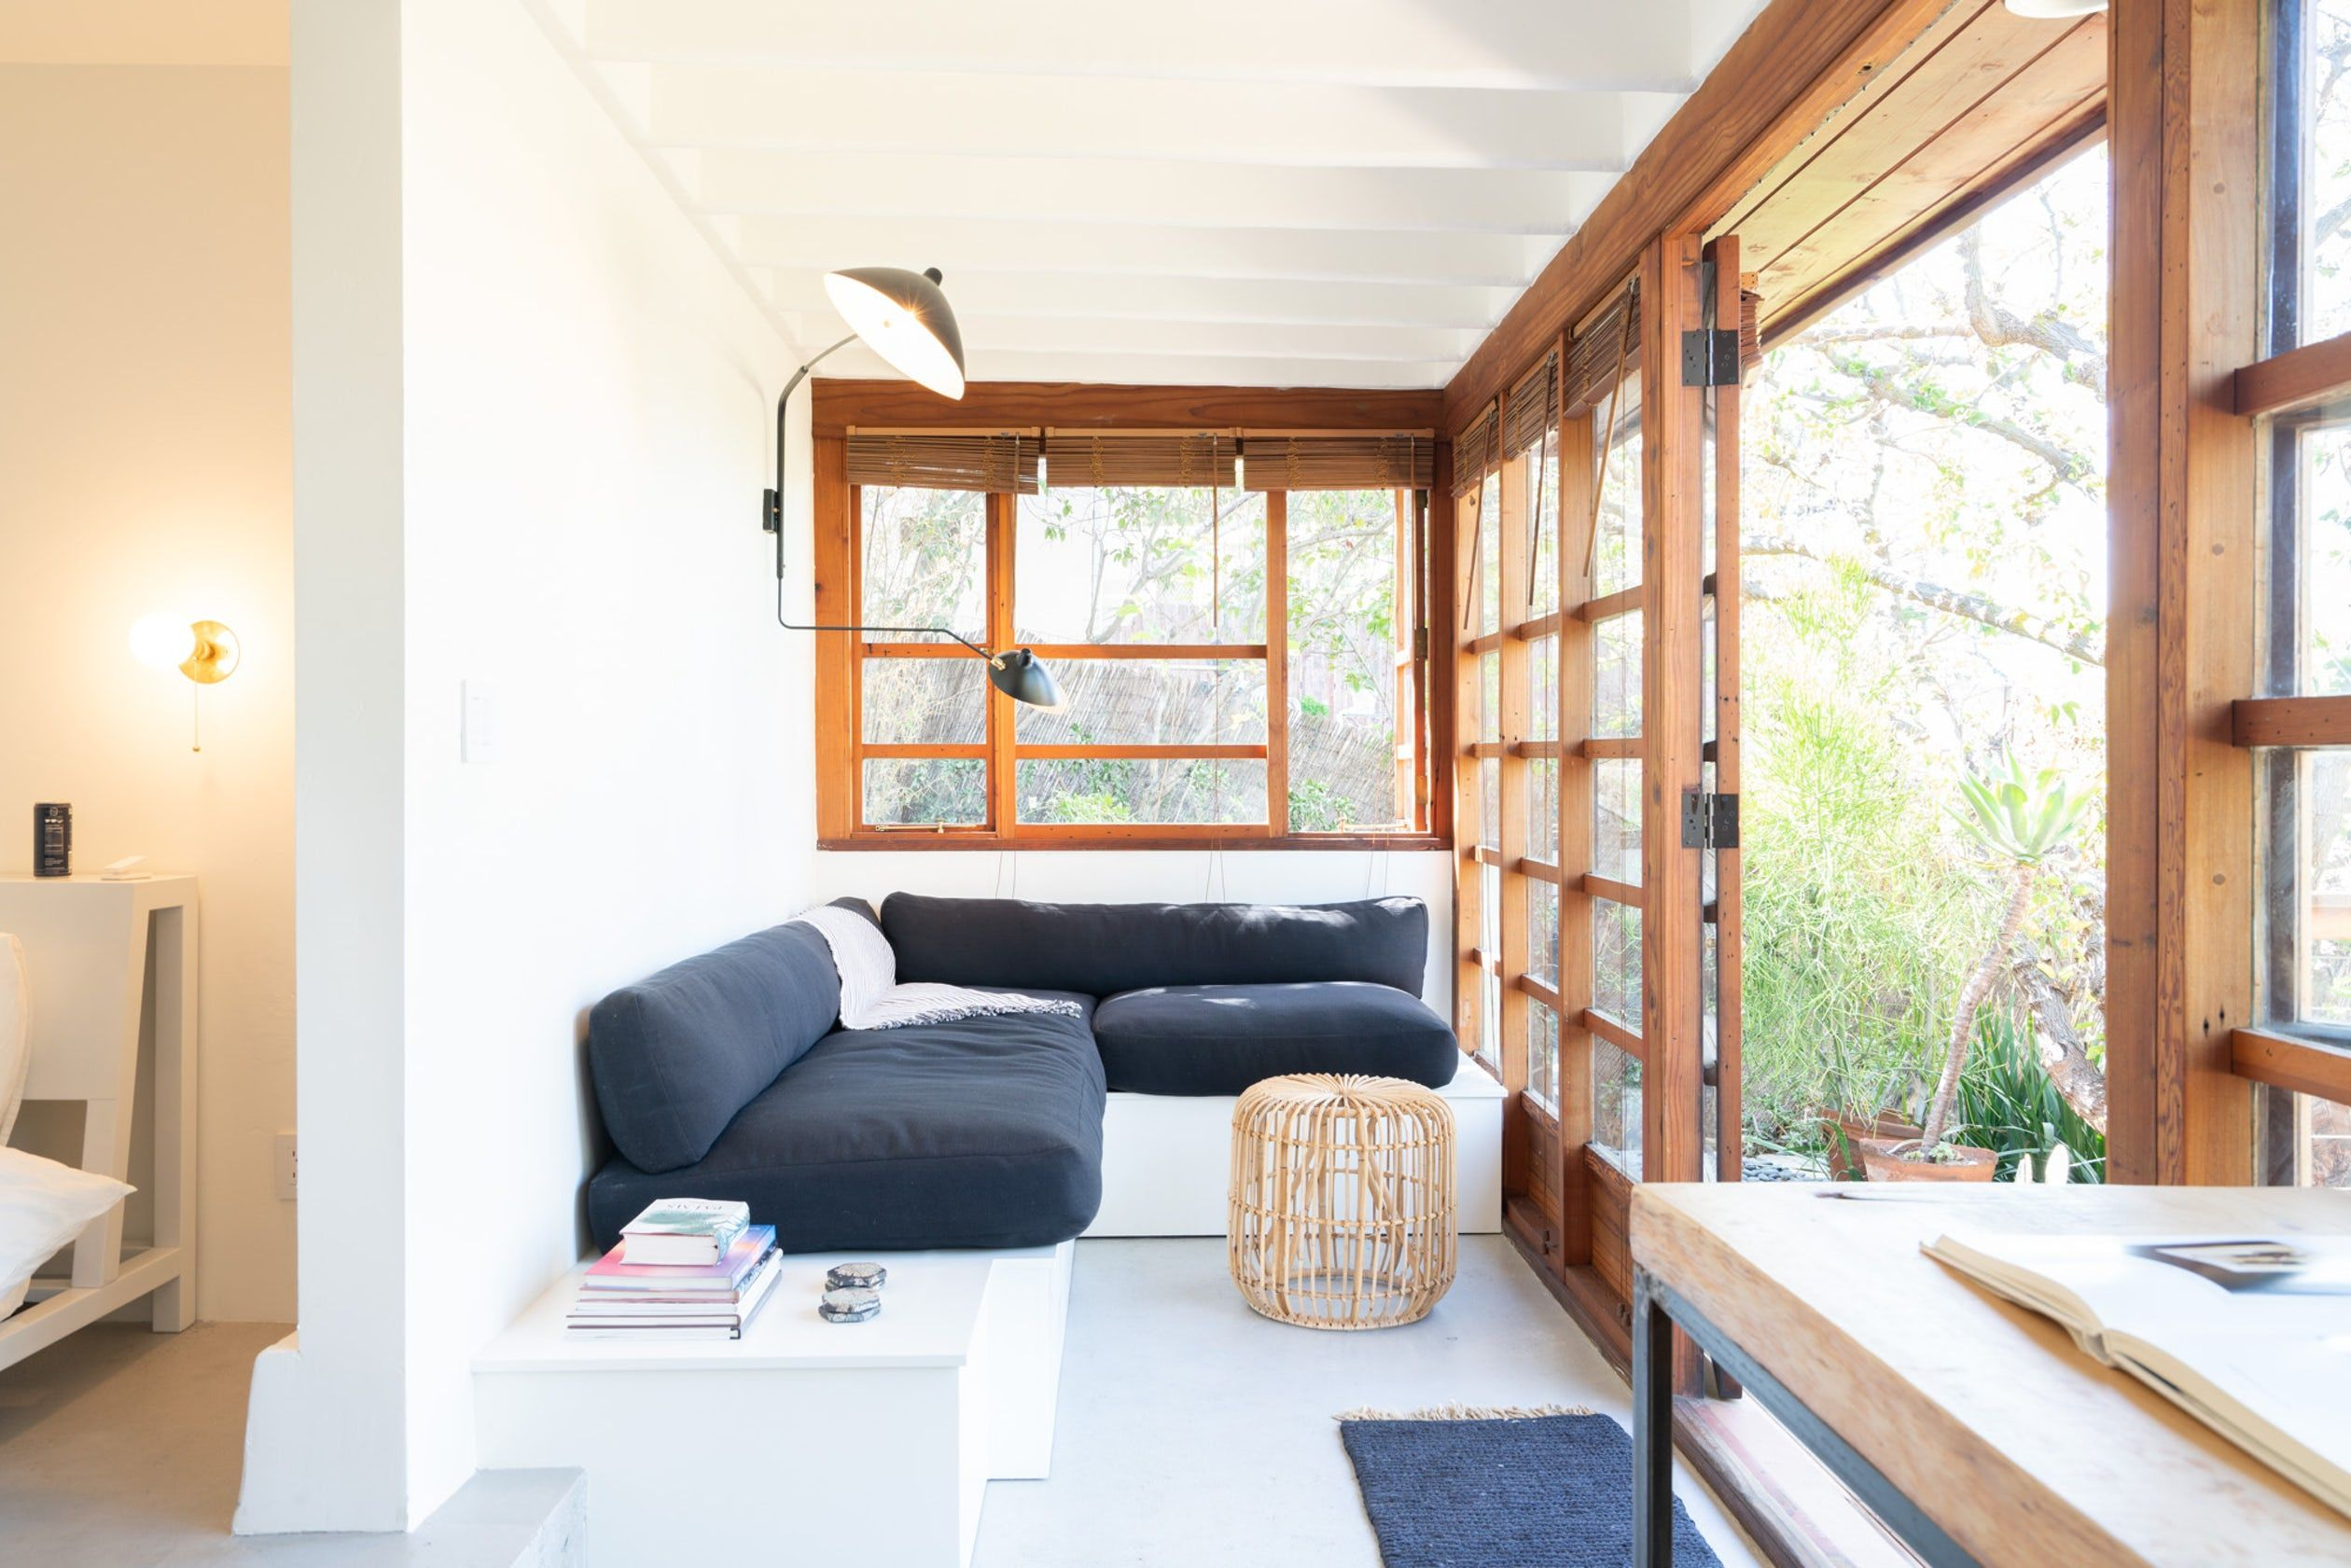 Echo In The Woods Echo Park Los Angeles The Plum Guide House Design Small Spaces Space Saving Furniture